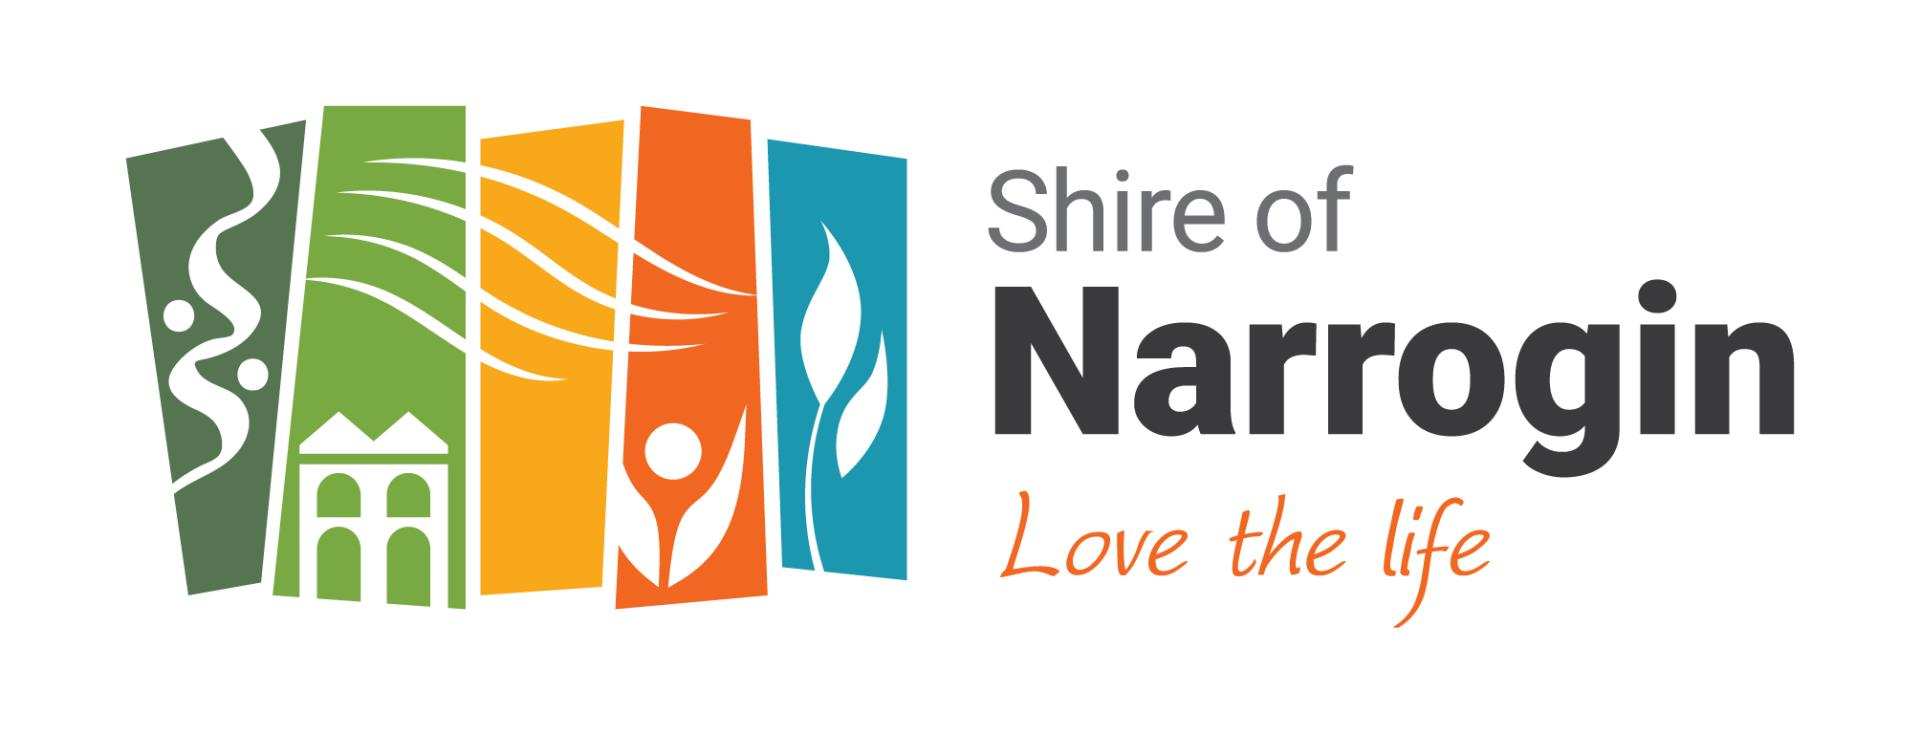 Shire of Narrogin logo